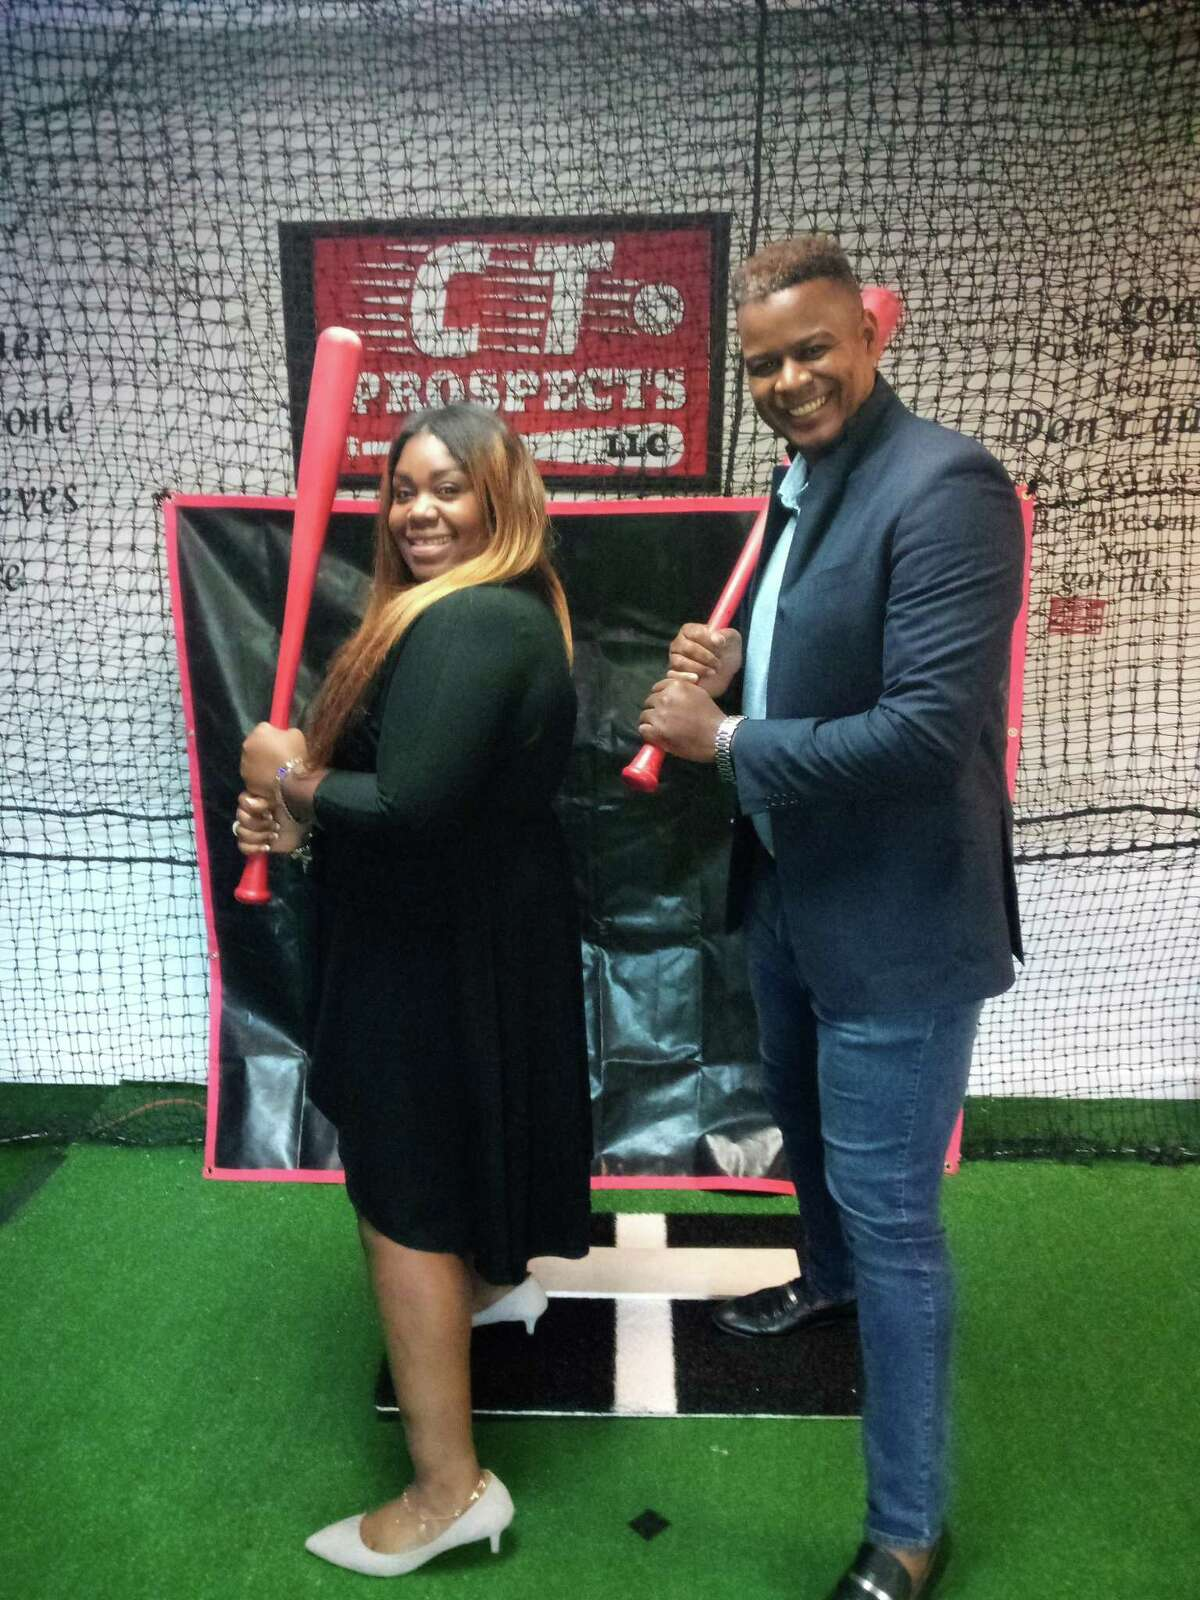 Omar Alcantara, a former shortstop for the San Diego Padres, and his wife Renee have opened CT Prospects LLC in Torrington. The couple and their family, who moved to Torrington 10 years ago, are offering baseball skill clinics, personal training and coaching.